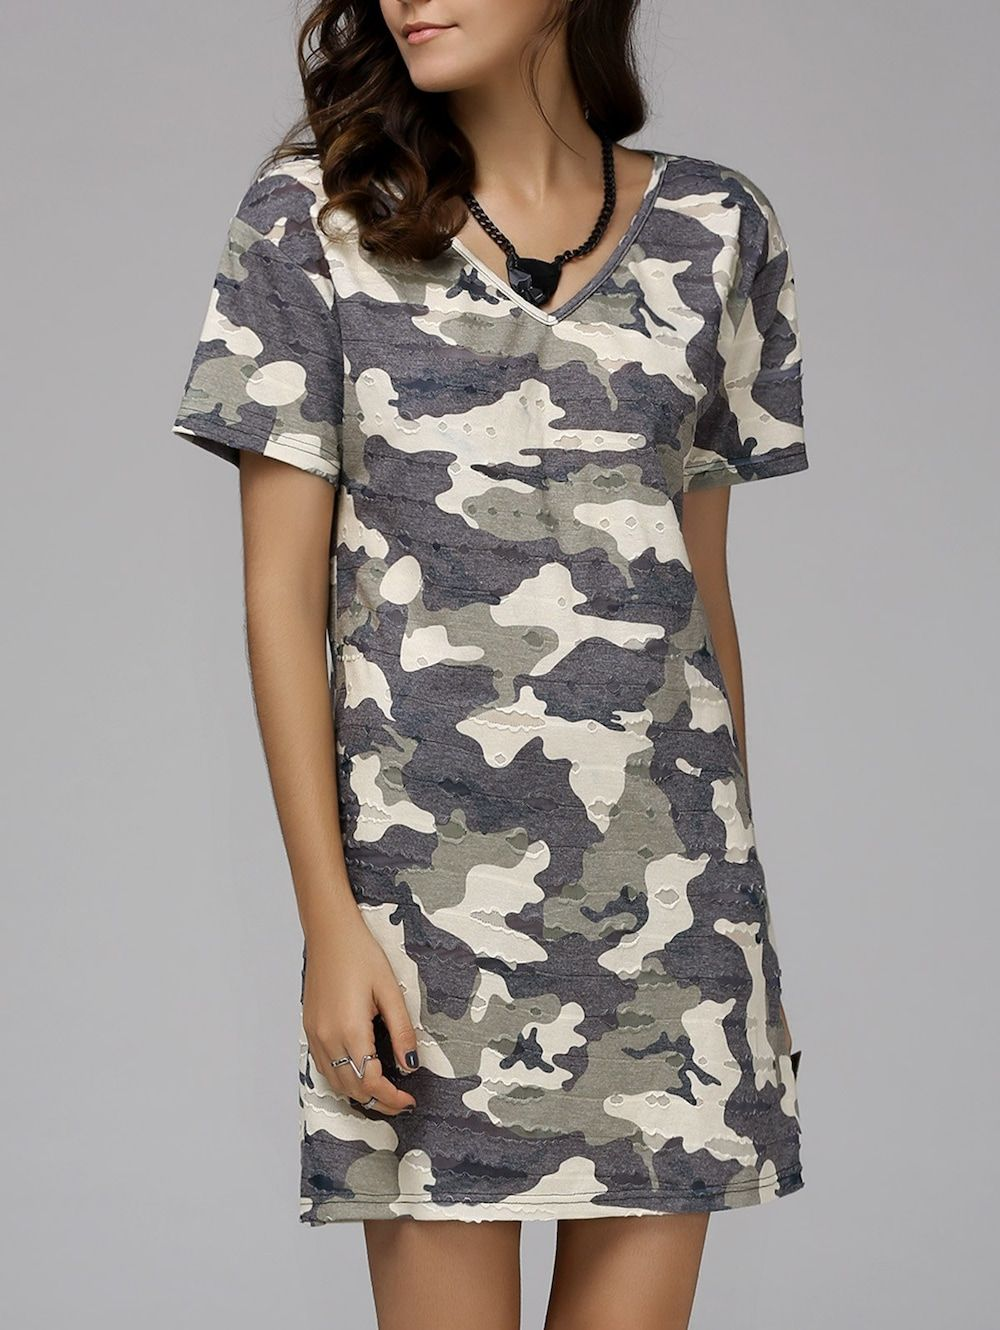 Fashionable Short Sleeve V-Neck Camo Print Women's Mini Dress